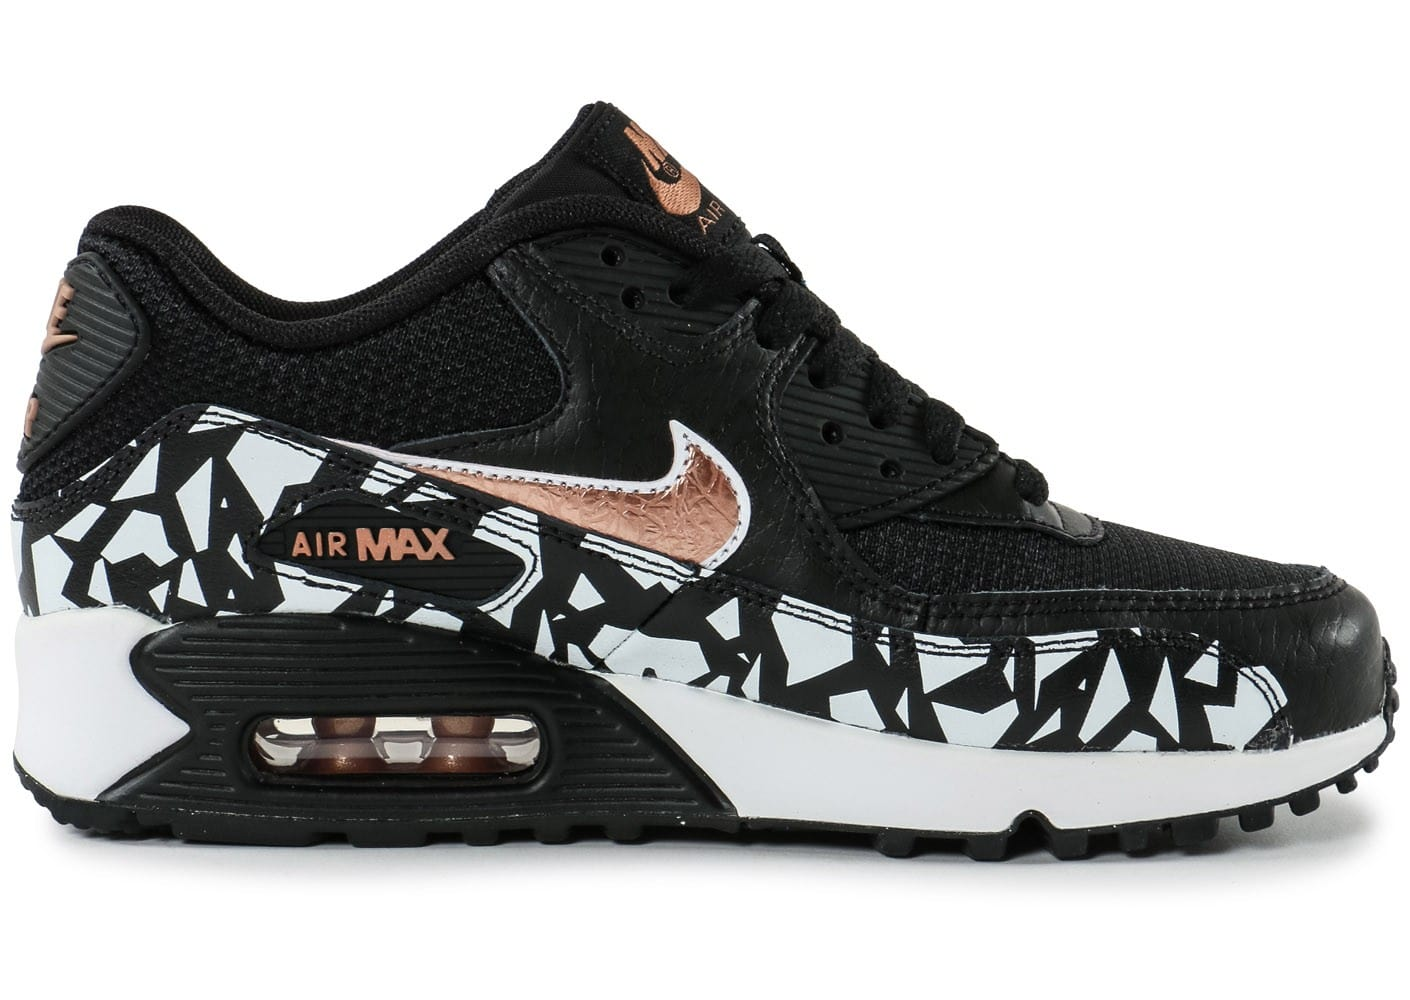 Max Fb Junior Air Chaussures 90 Nike Neymar Noire Tc35Ku1lFJ